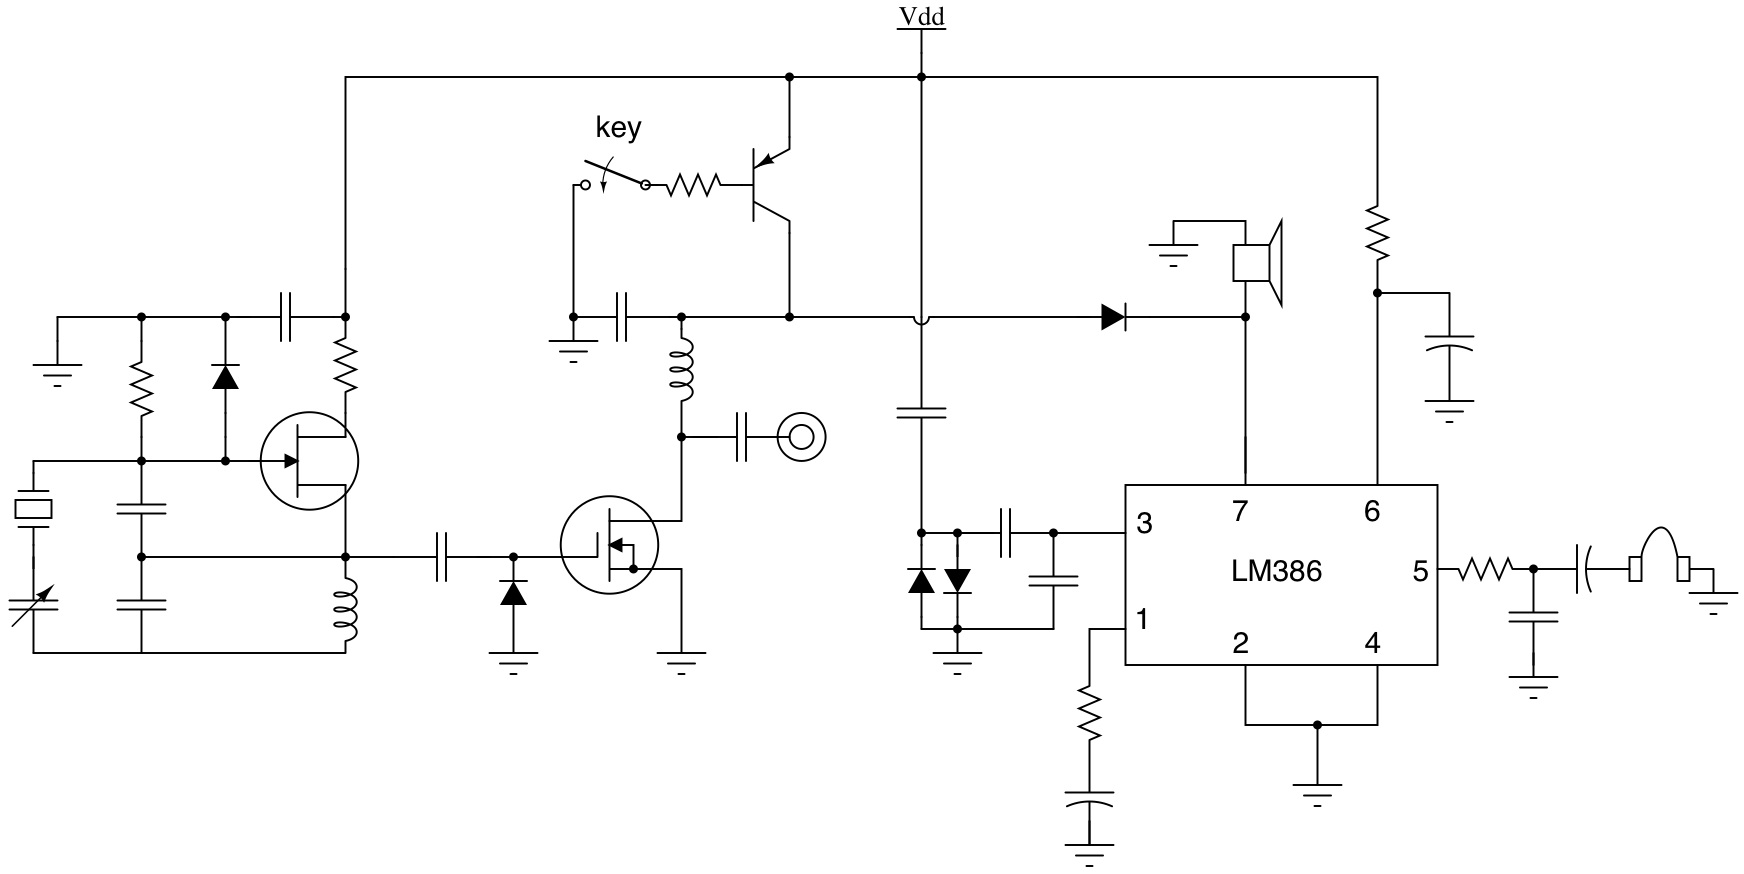 Homebrew RF Circuit Design Ideas likewise 265644 Aviation Band Super Regenerative Radio Receiver further Index php likewise Modeling Of Ethanol Production From Molasses A Review Ico 1000108 further 933. on am receiver schematic